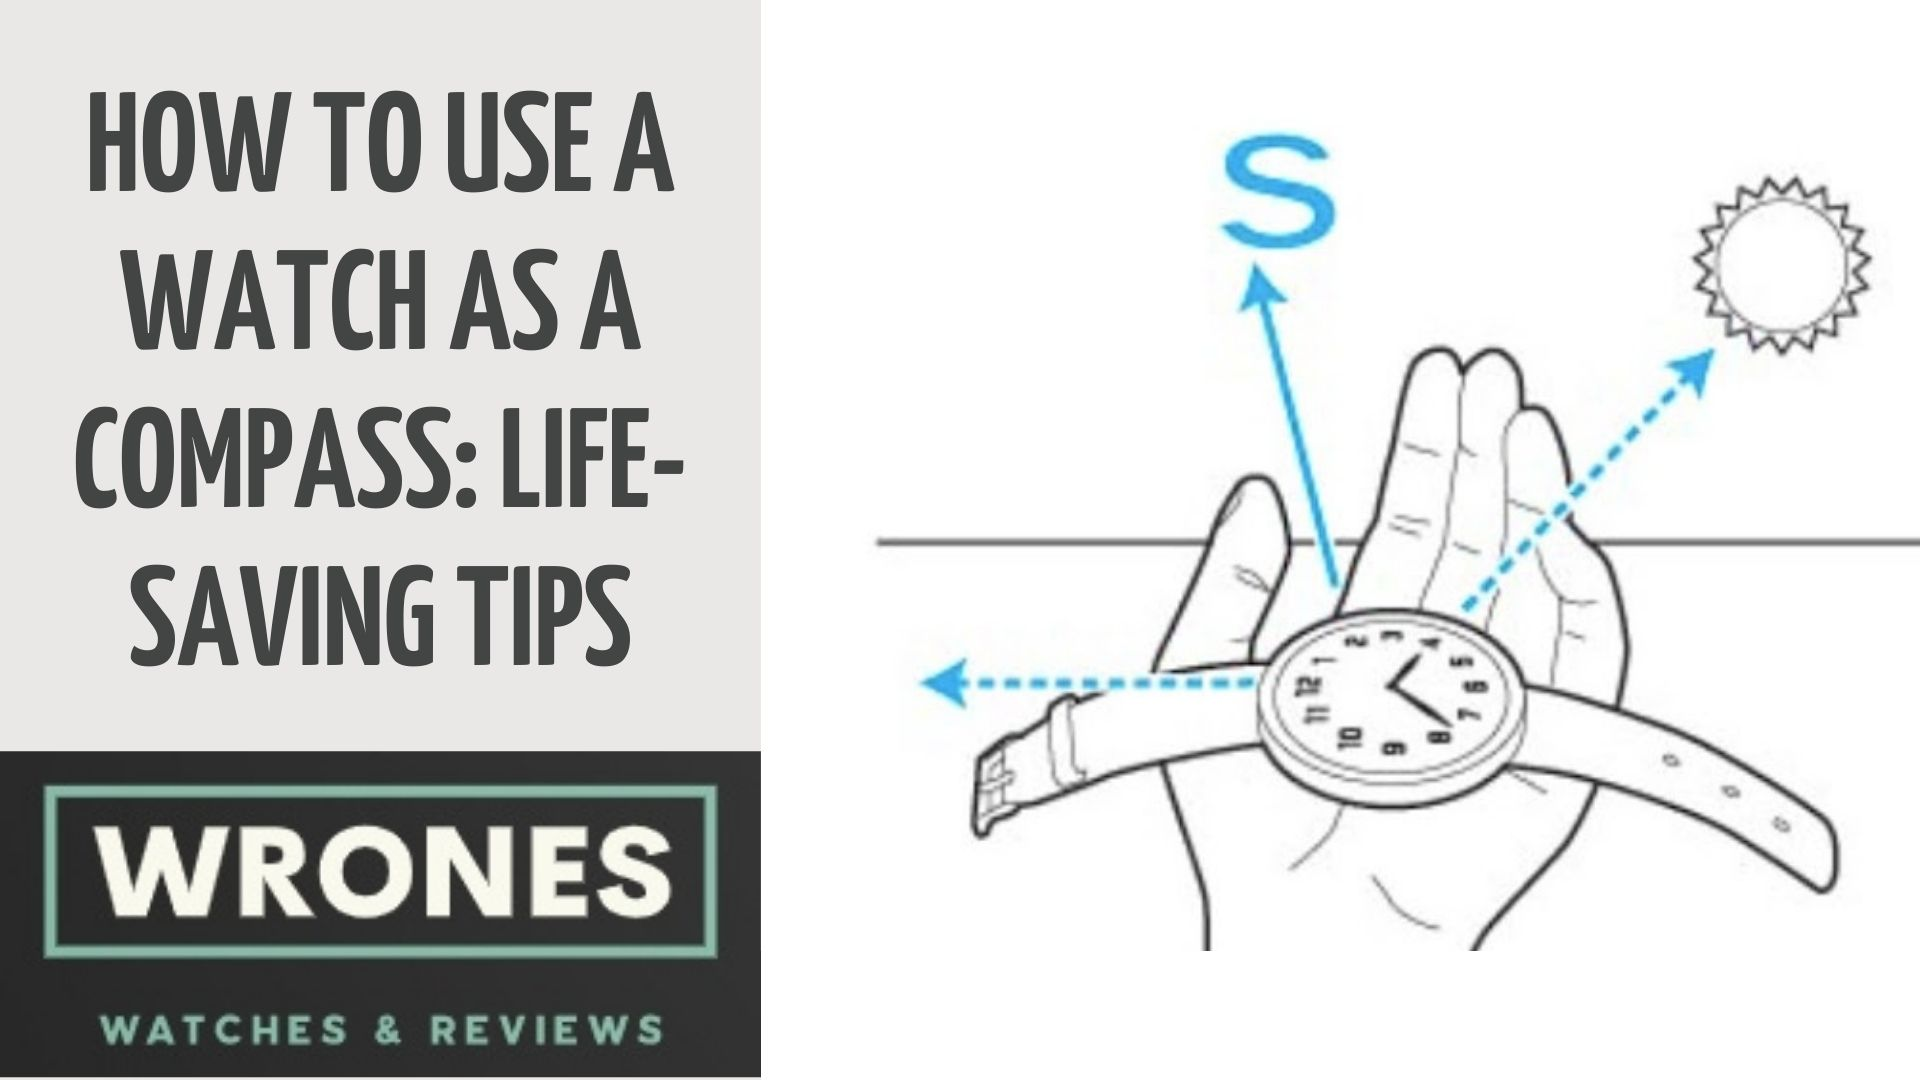 How to Use A Watch As A Compass Life Saving Tips wrones